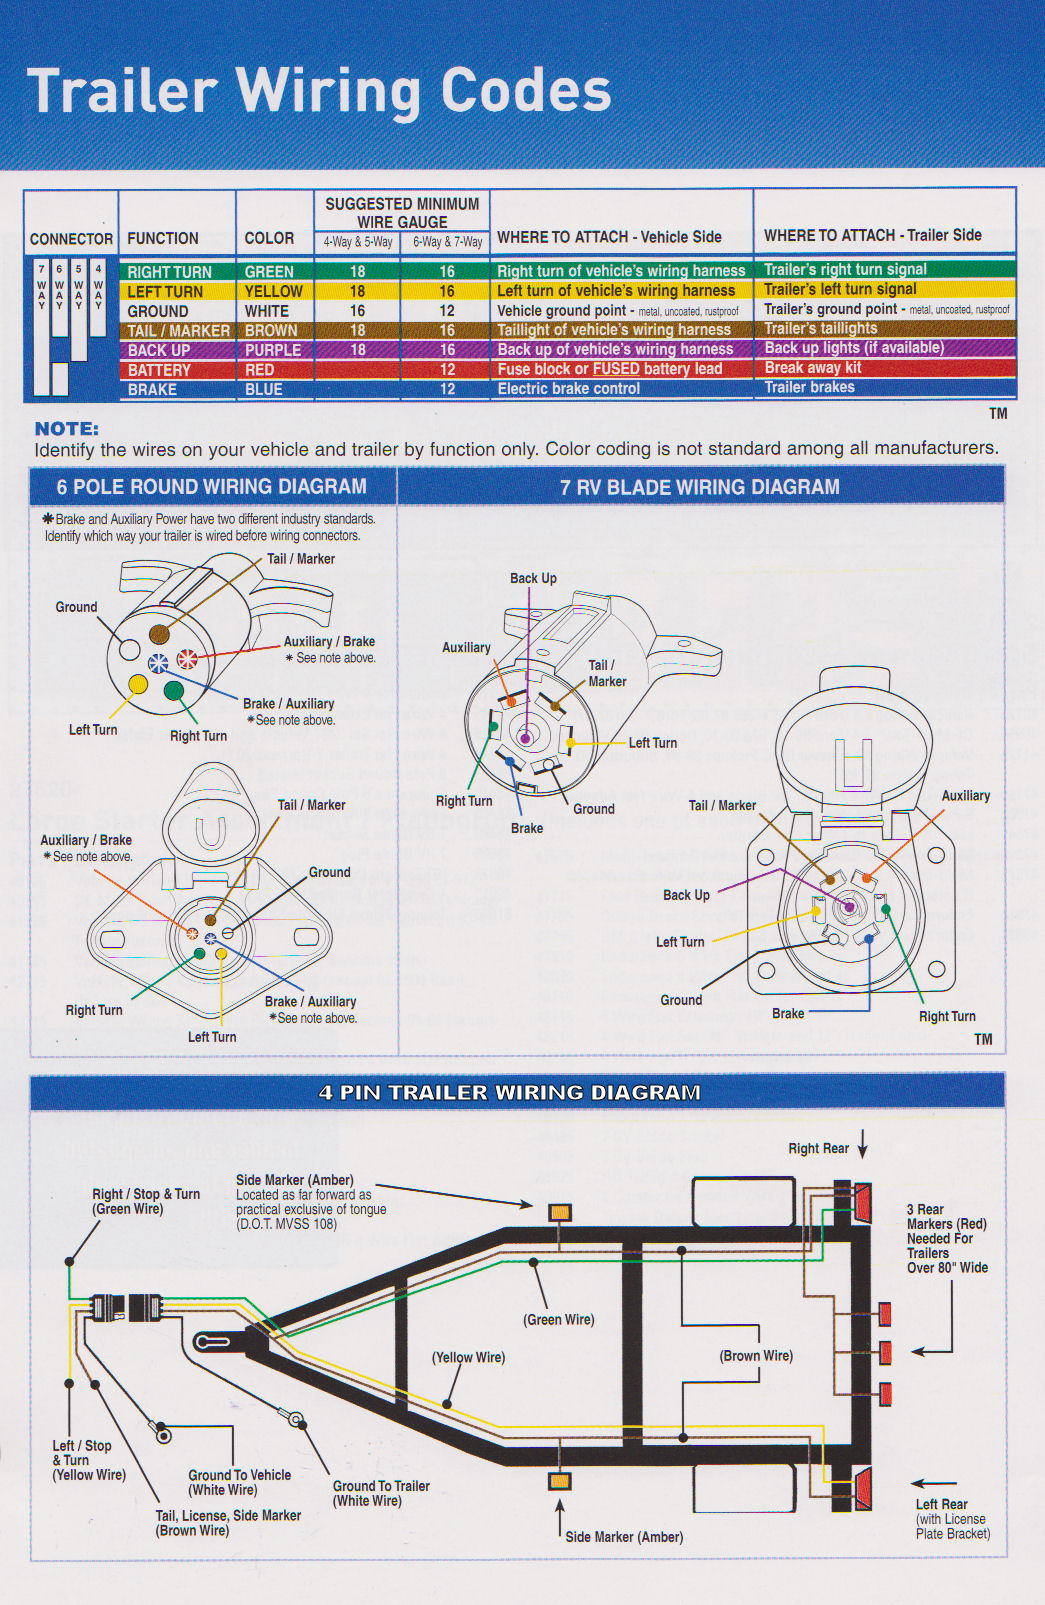 Trailer Wiring Diagram | Trailers In Denver Co | Denver Co Trailer - American Trailer Wiring Diagram